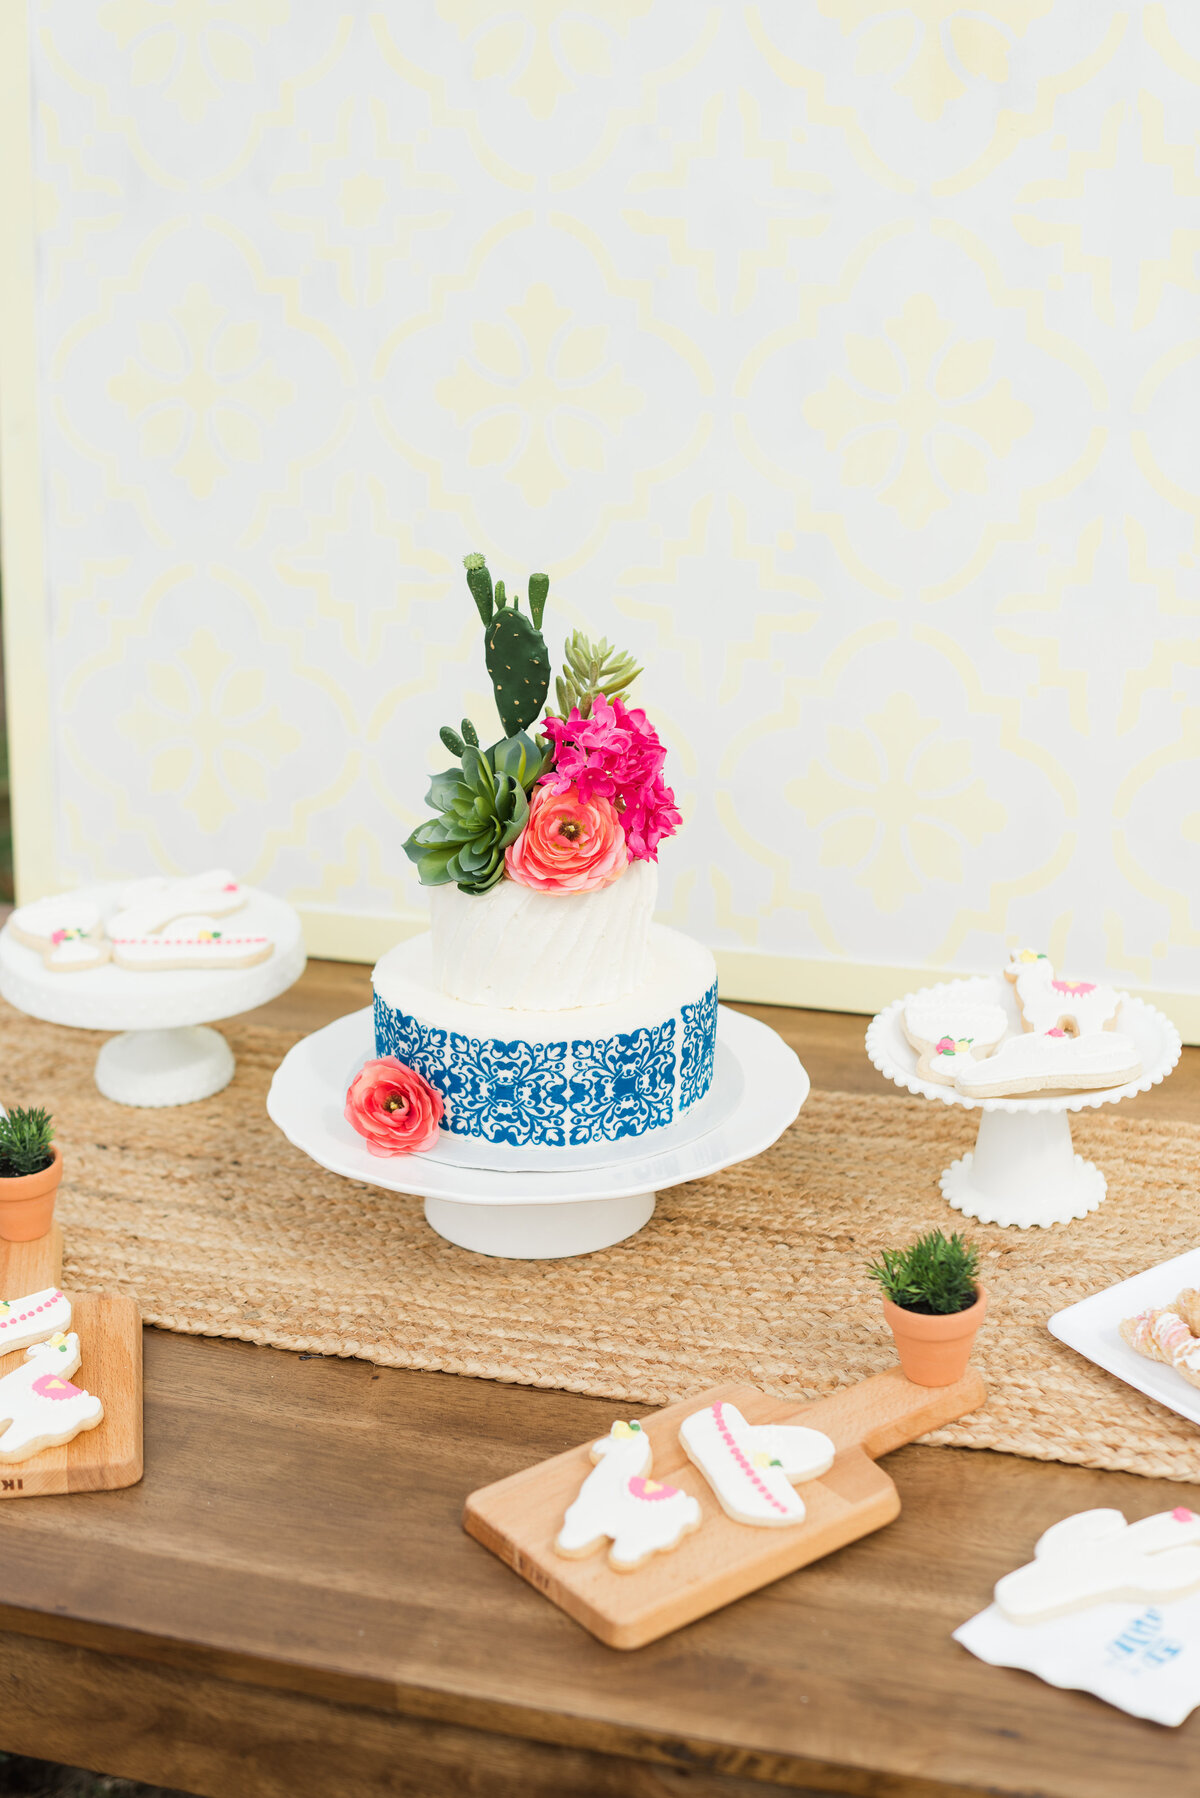 Fiesta-Party-Inspiration-by-Event-Prep-Cassandra-Clair-Photograpy-Amanda-Collins-21